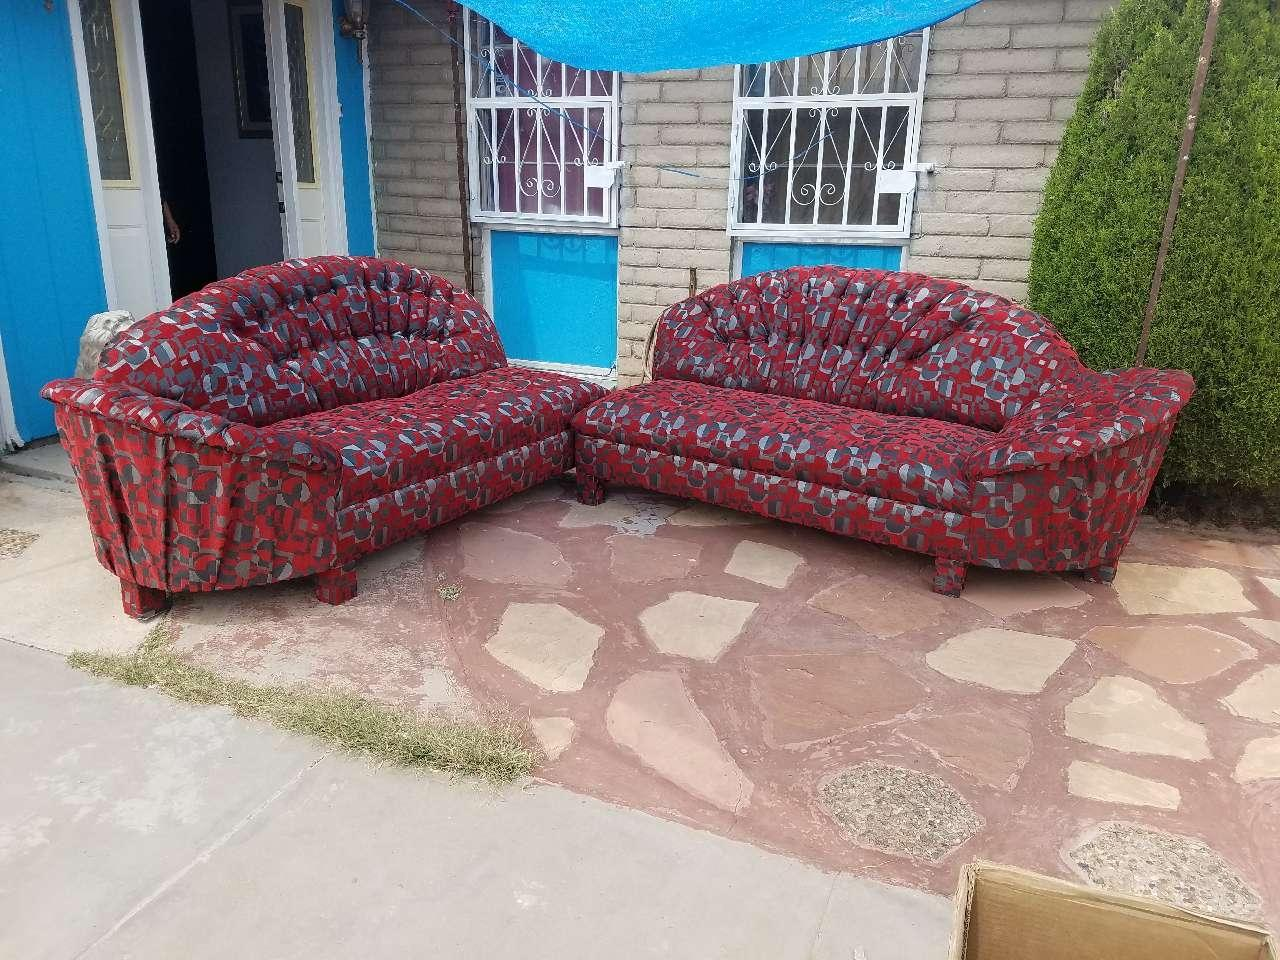 Best Couches In Stock We Can Make Them To Your Preference For Sale In El Paso Texas For 2018